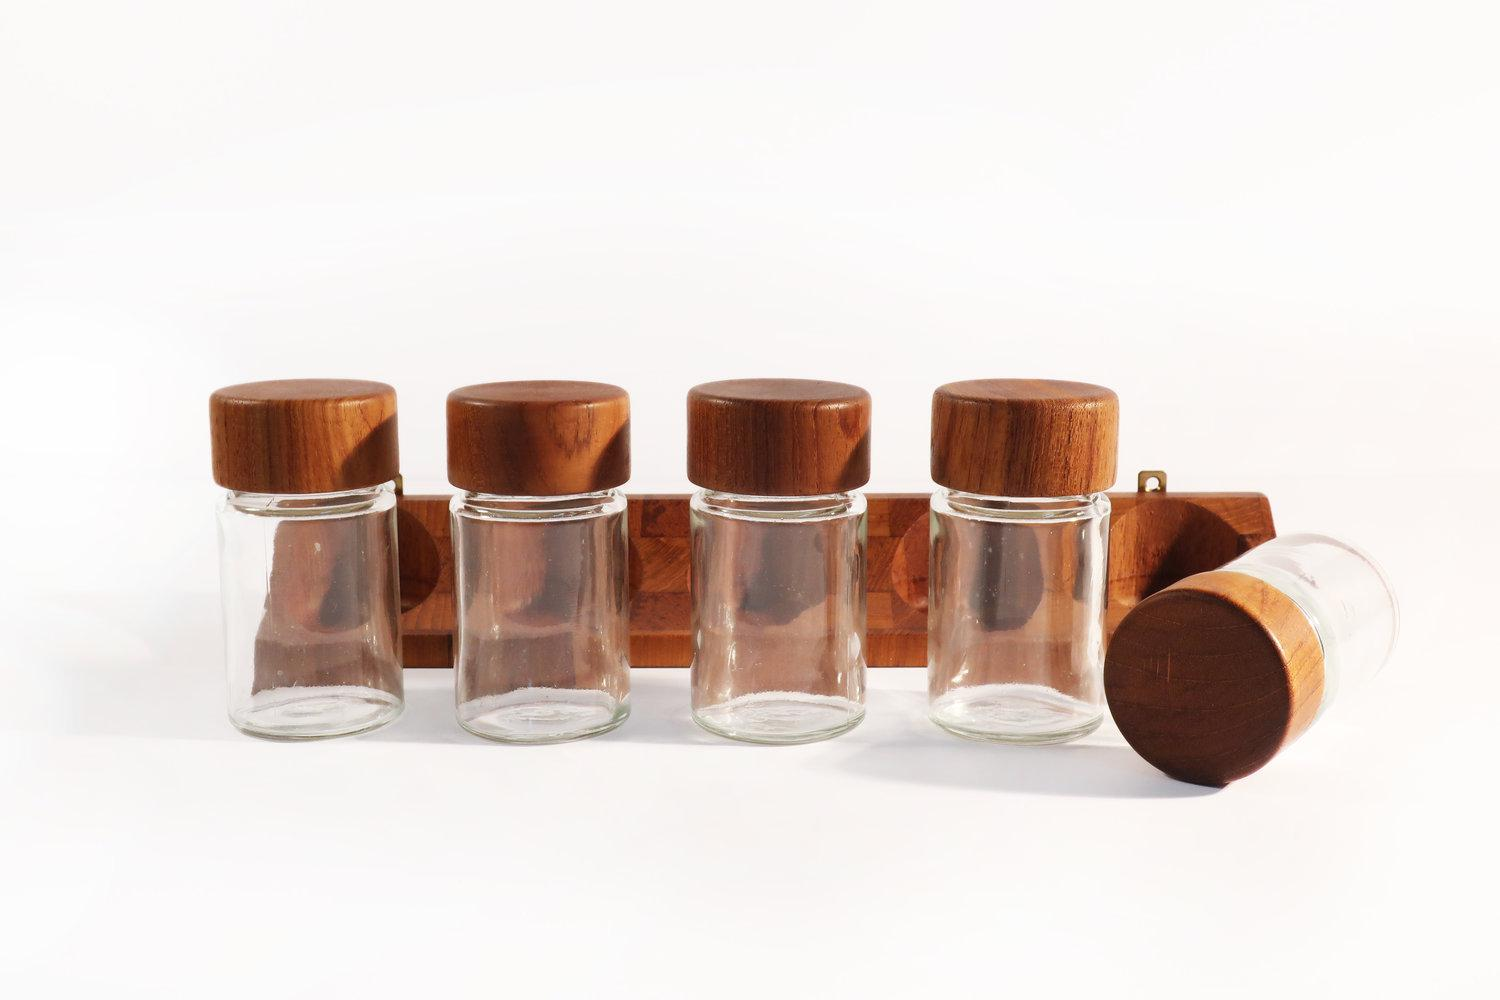 Digsmed Digsmed Danish Modern Teak Spice Rack U0026 Containers   Set Of 6 For  Sale